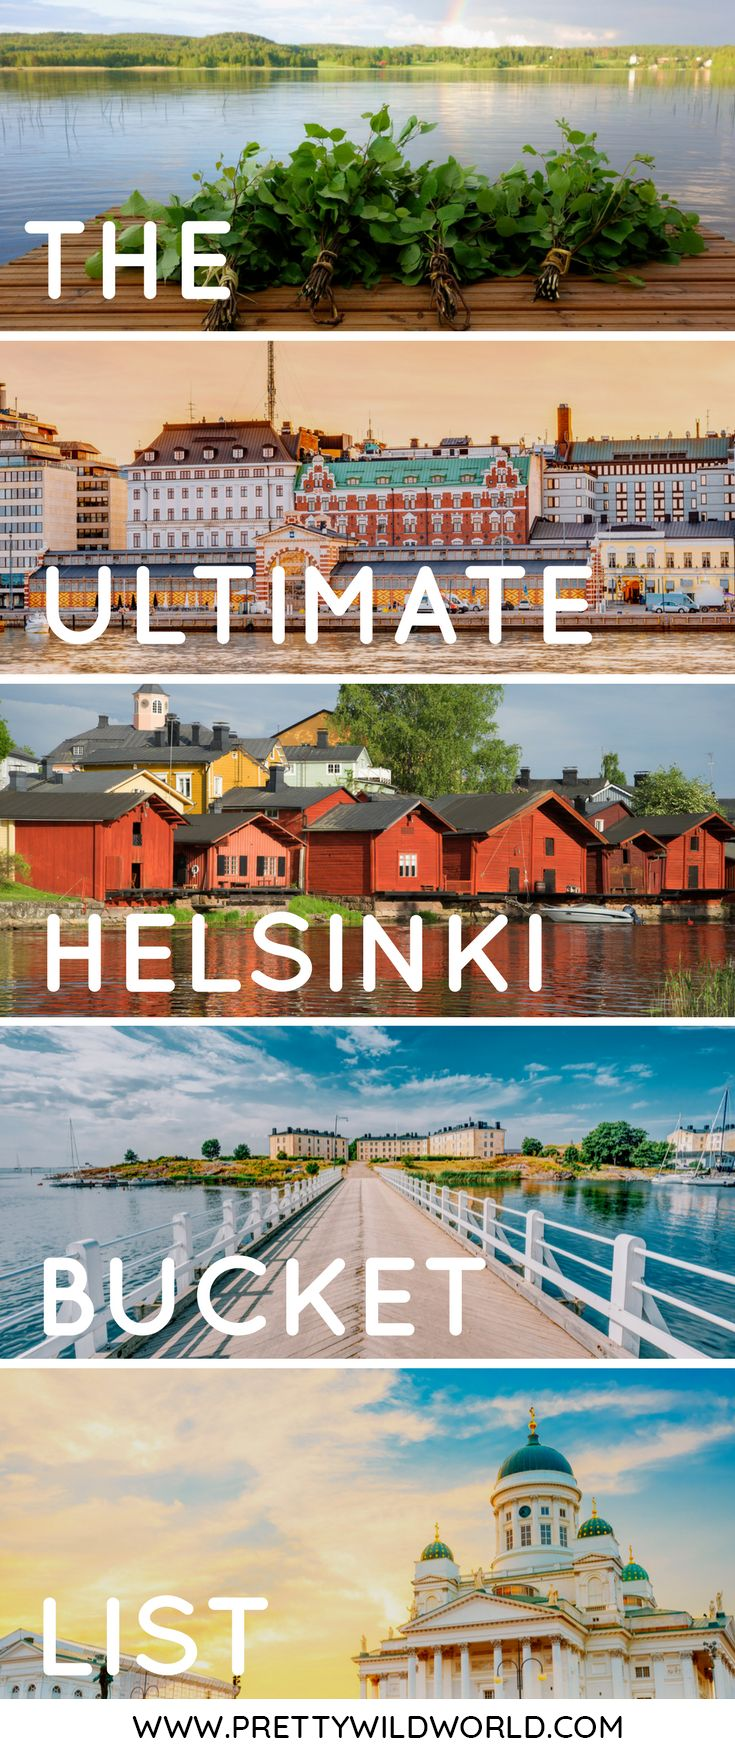 #HELSINKI #FINLAND #EUROPE #TRAVEL | Things to do in Helsinki, Finland | helsinki finland | weather in helsinki | visit helsinki | where is helsinki | finland helsinki | what to do in helsinki | helsinki cathedral | club helsinki | helsinki sightseeing | helsinki tourism | helsinki winter | helsinki museum | helsinki things to do | helsinki attractions what to see in helsinki | helsinki tours | helsinki festival | day trips from helsinki | helsinki finland points of interest